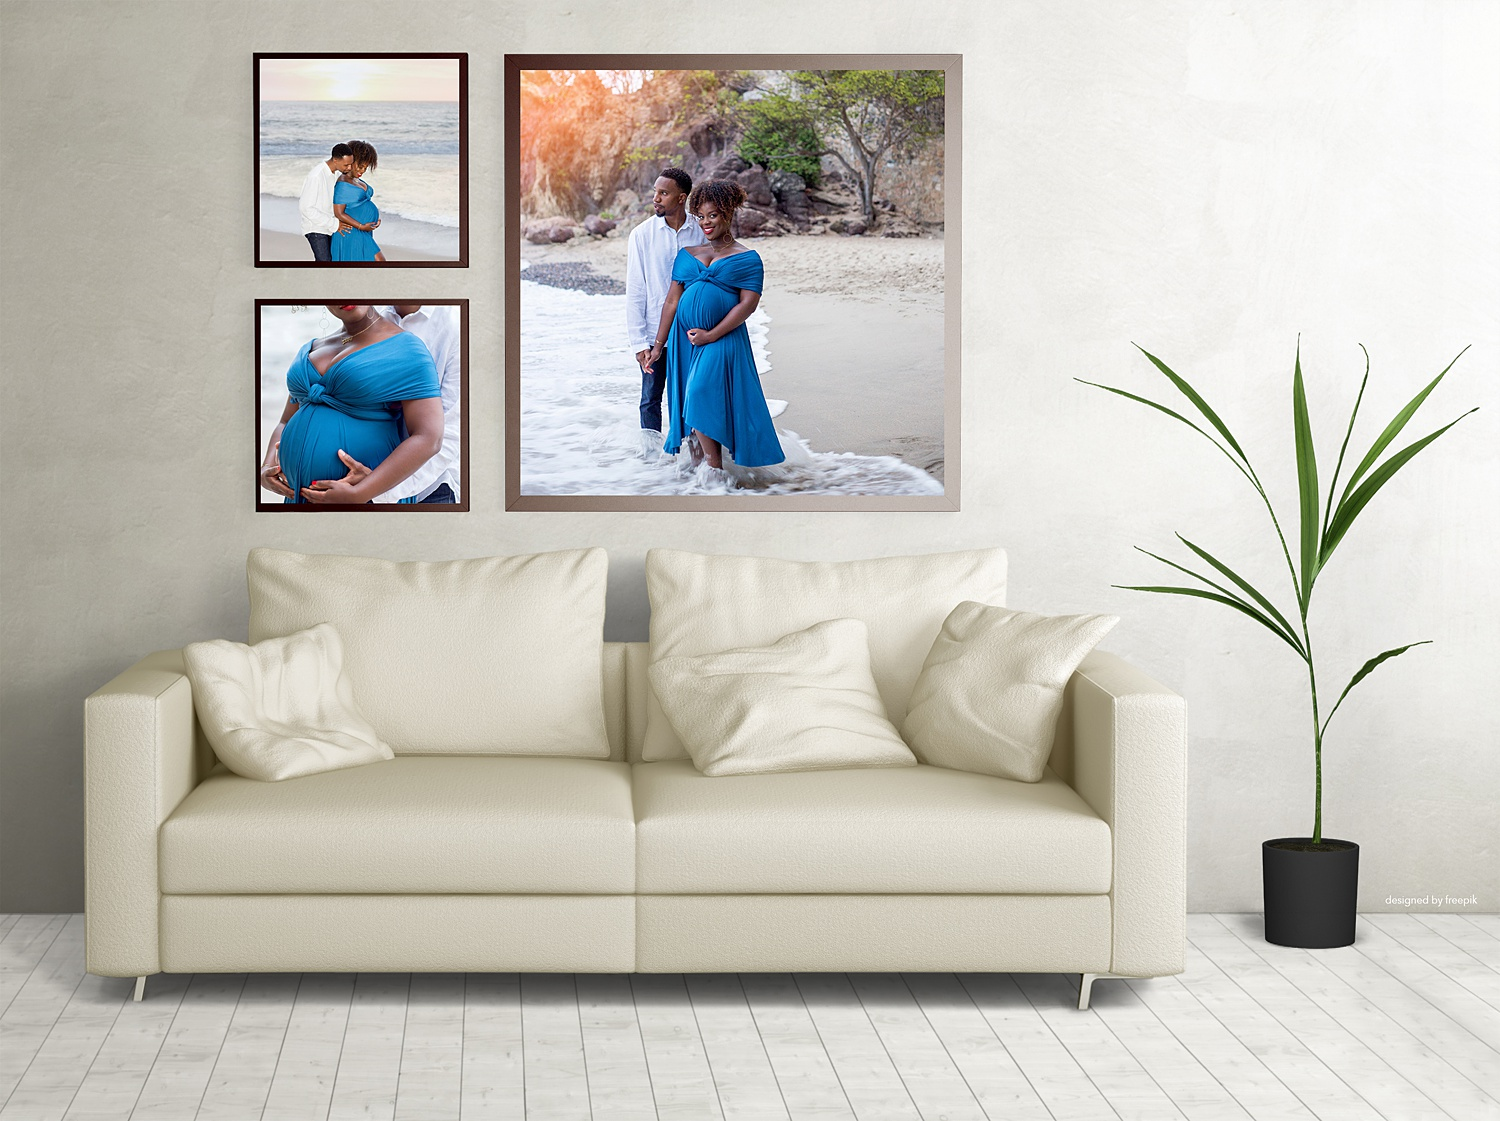 Image: You can use a gallery mock-up like this to sell wall galleries, frames, or other products dur...